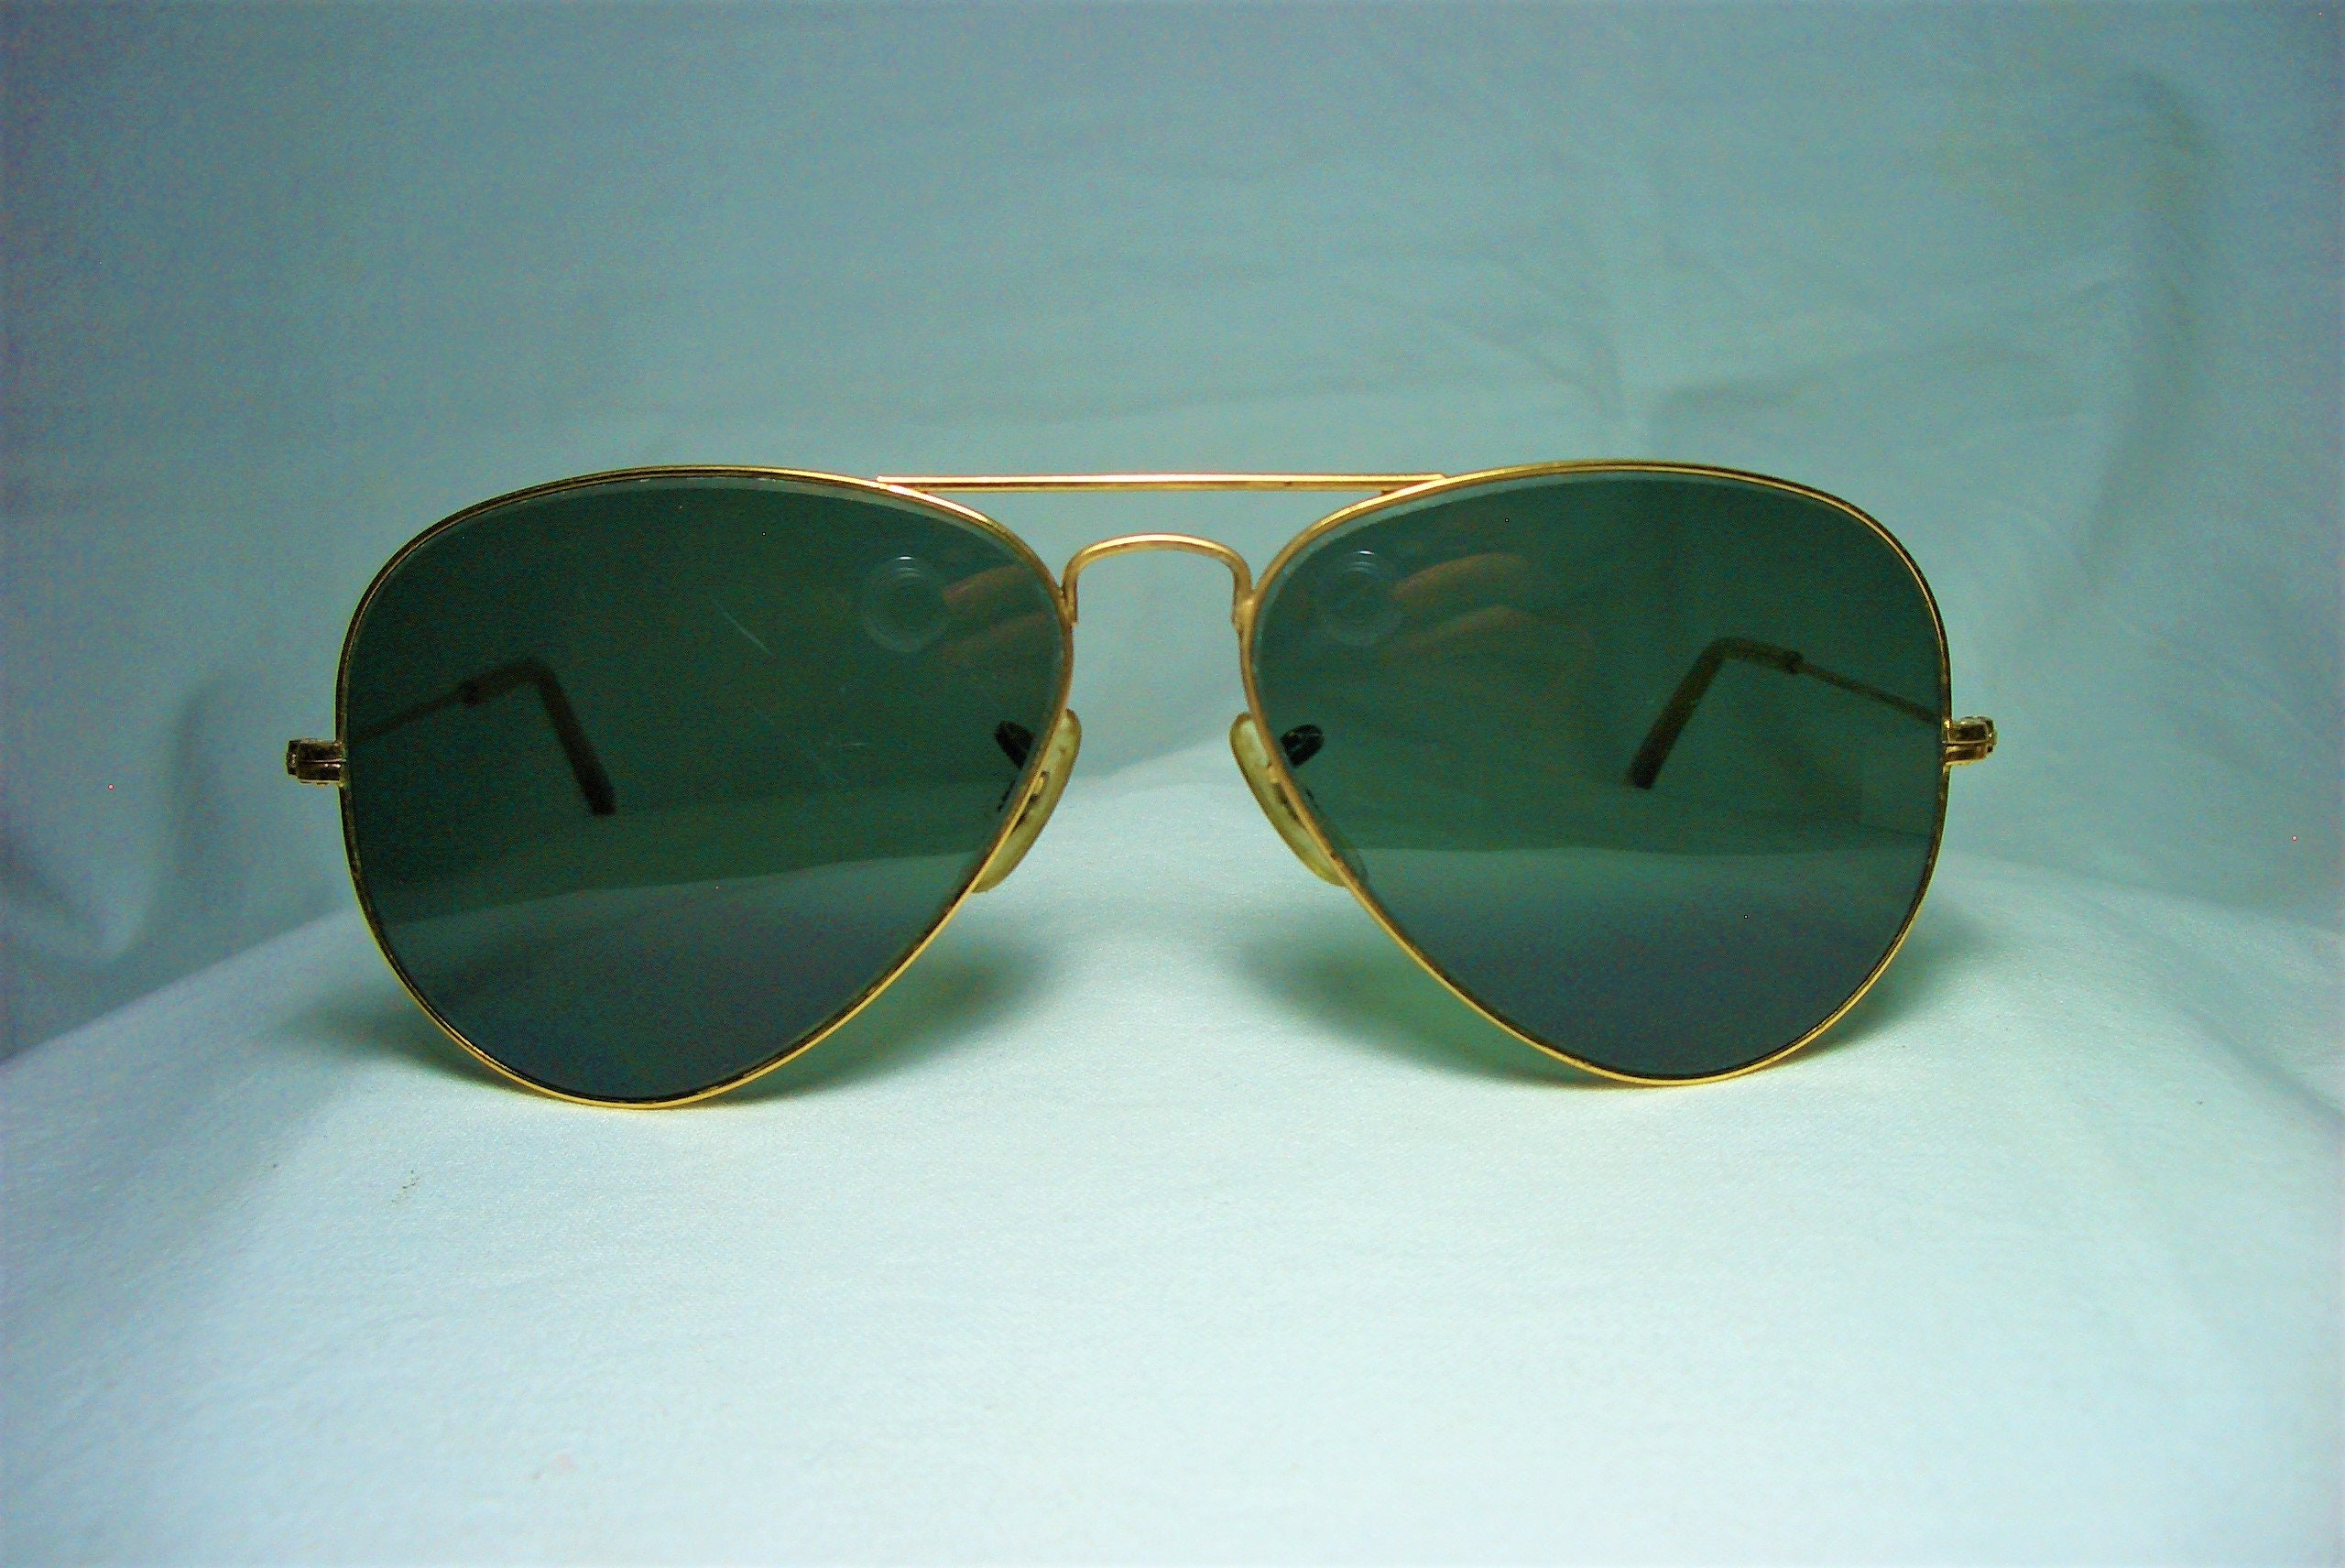 41880a0df4c9 Ray Ban Aviator sunglasses RB 3025 gold plated crystal